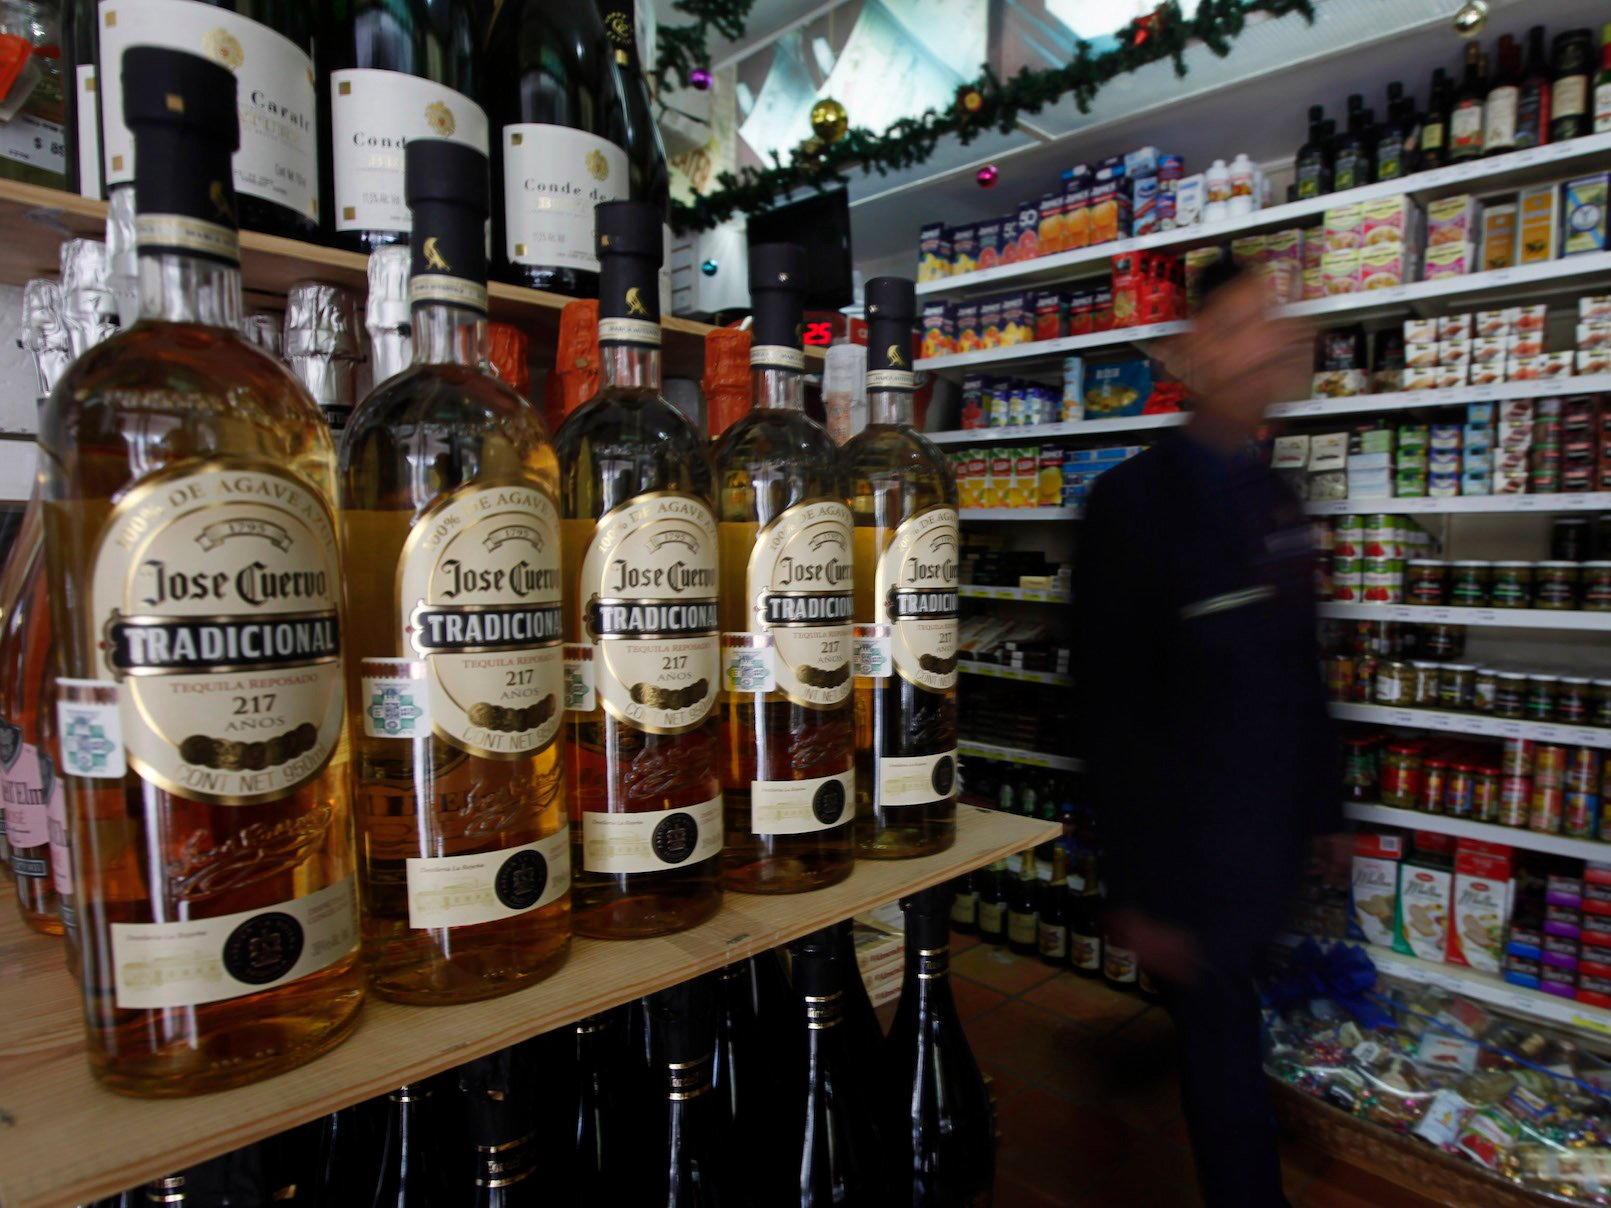 Potential Good News for Investors as Jose Cuervo Contemplates IPO